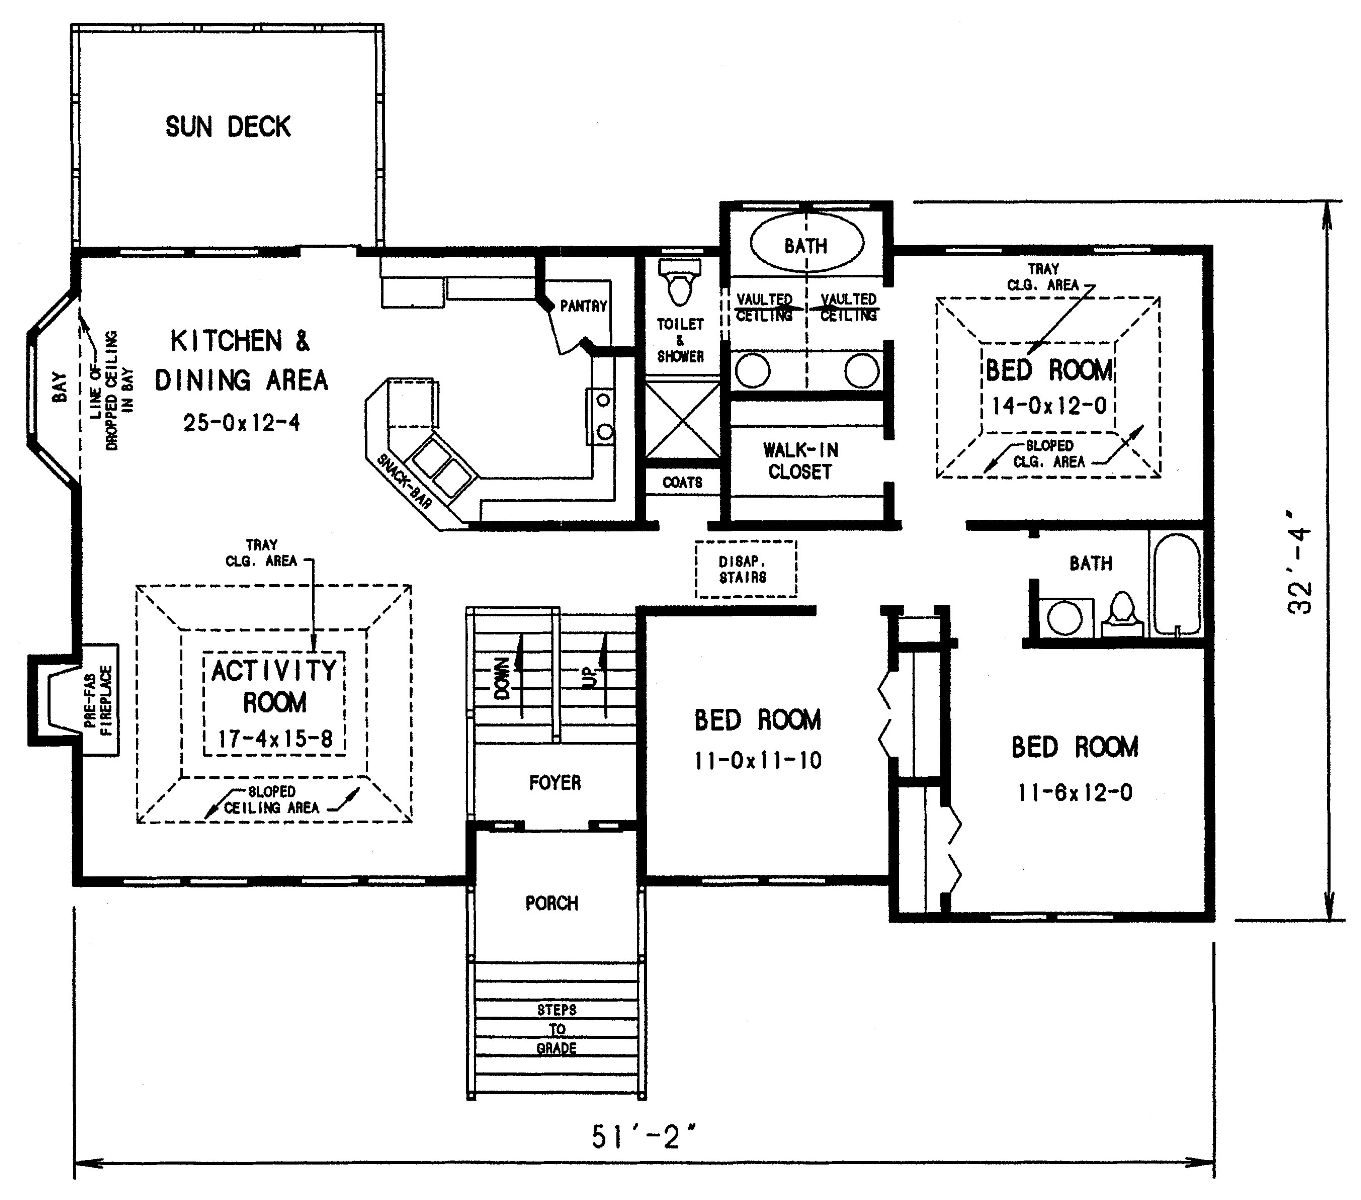 Cottage House Plan with 3 Bedrooms and 2.5 Baths - Plan 3303